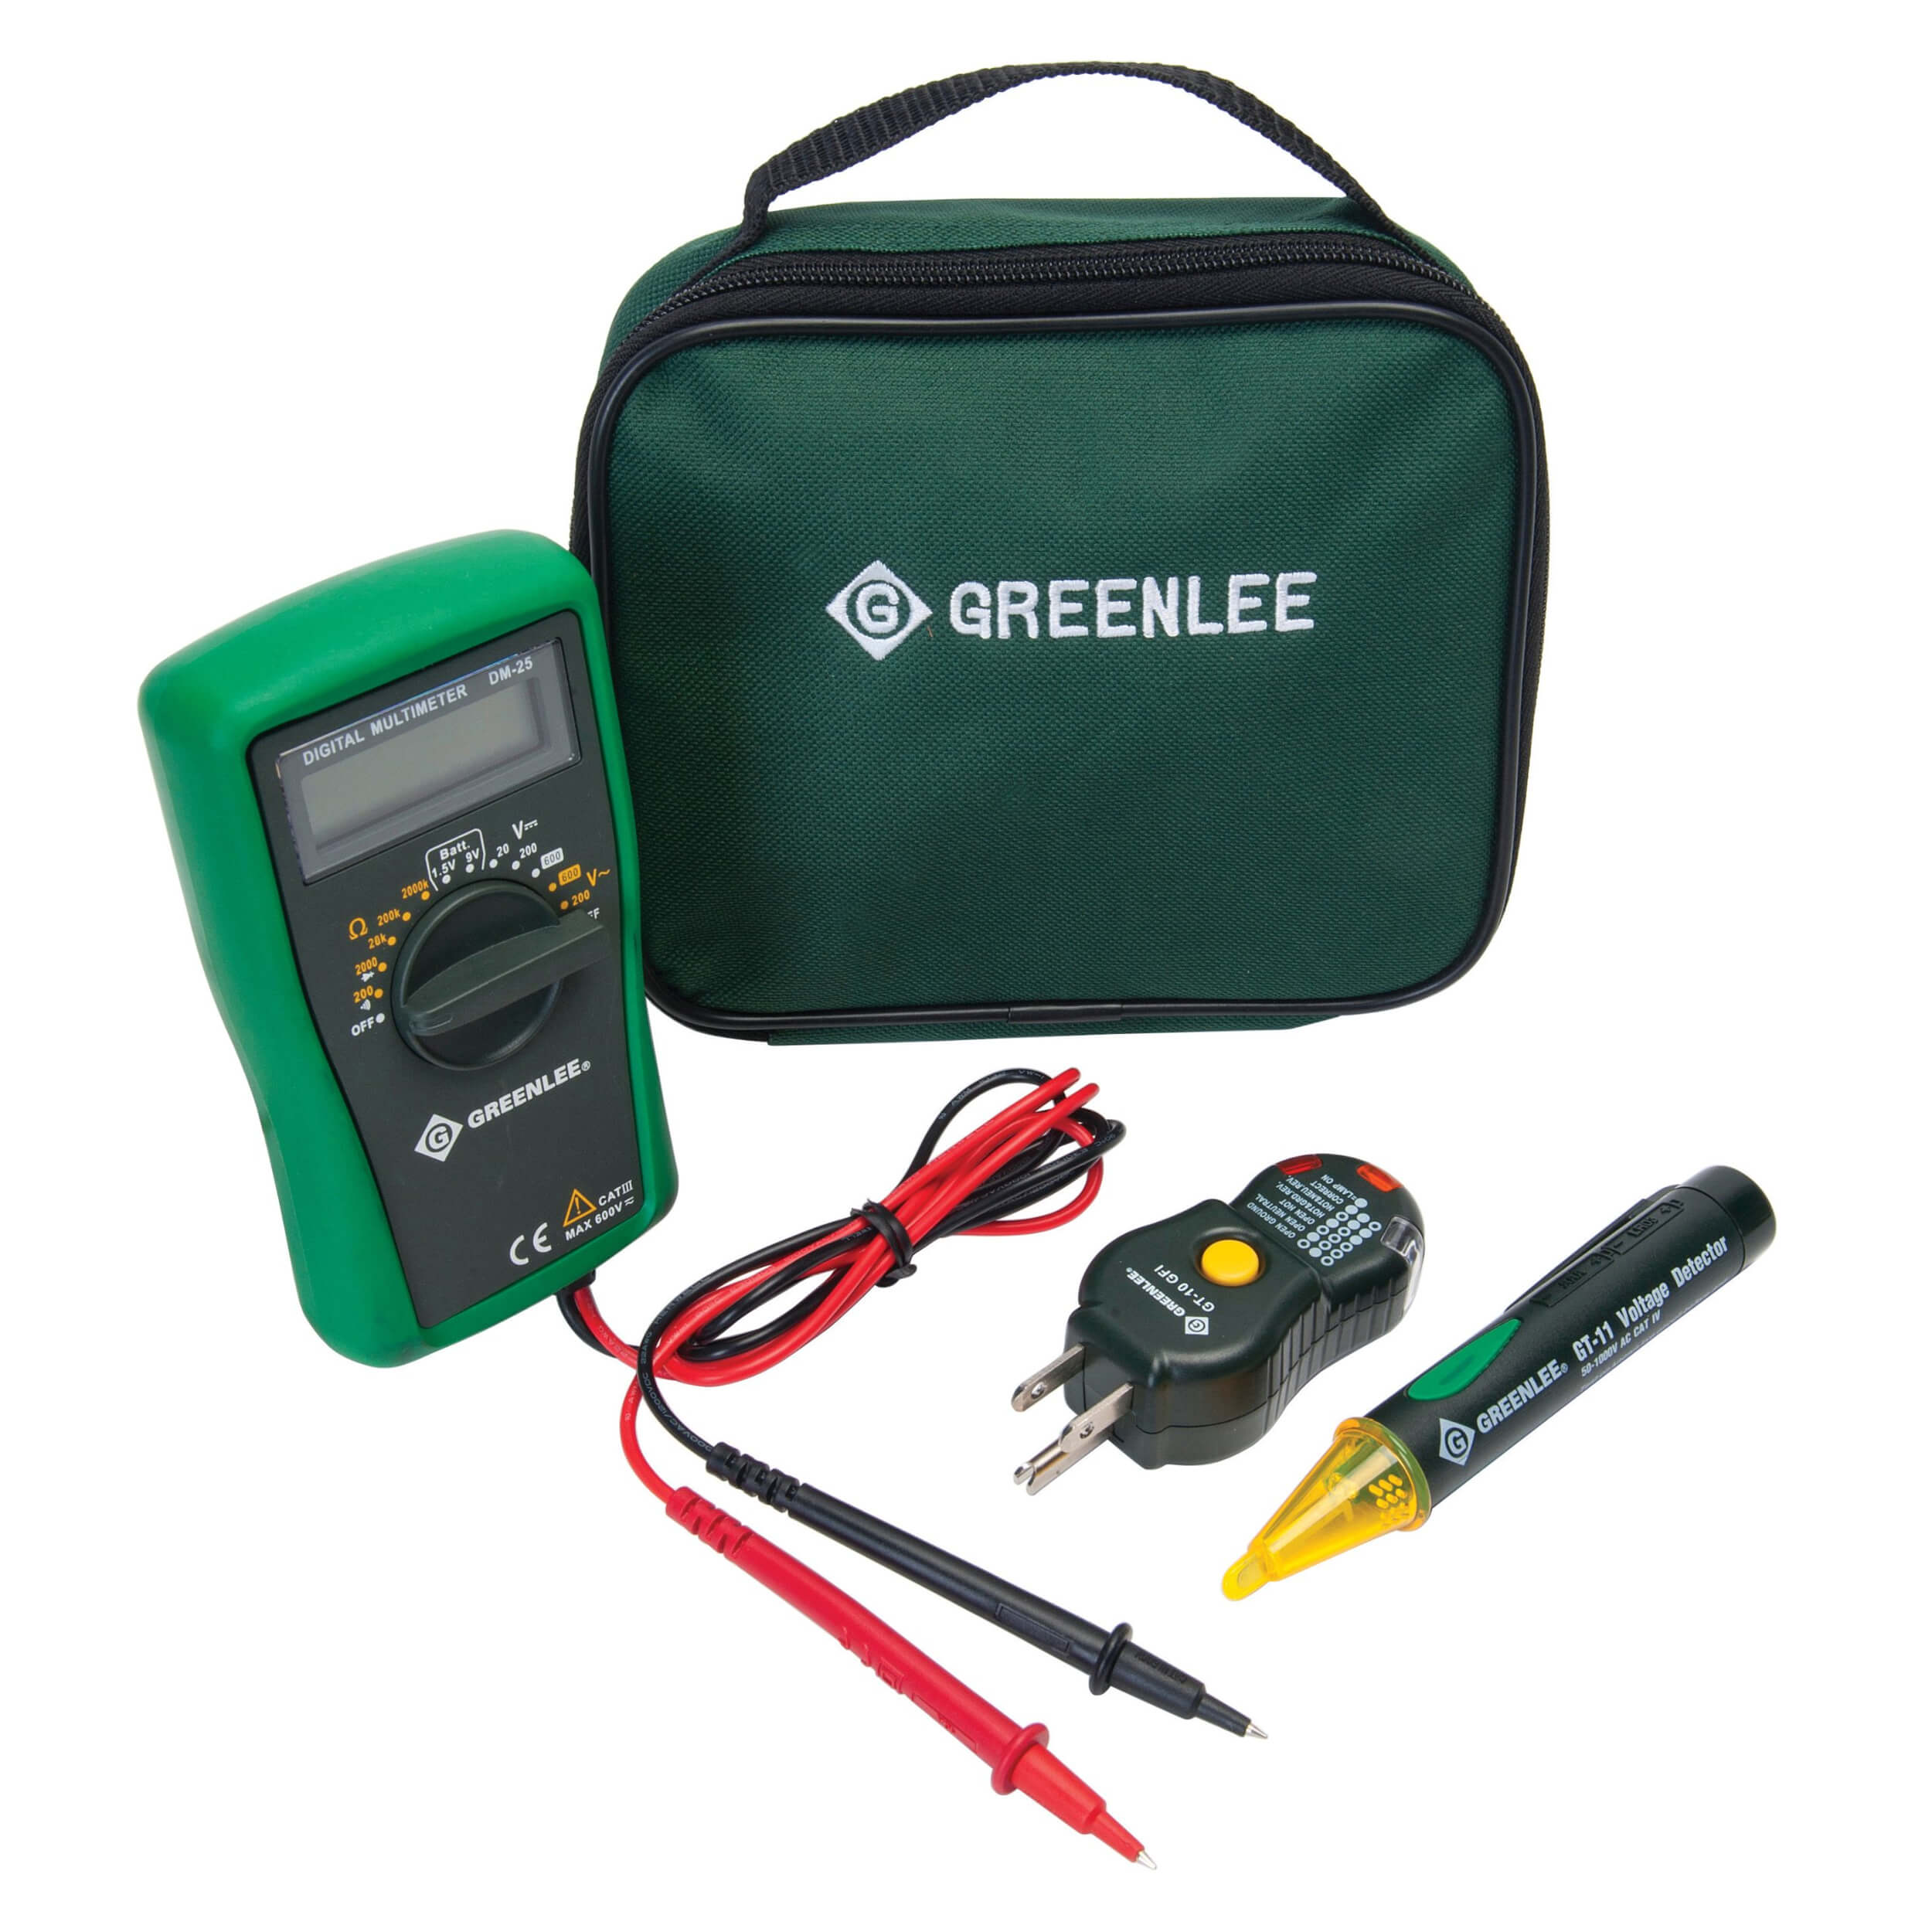 Greenlee Electrical Tester : Greenlee tk agfi electrical kit for gfci